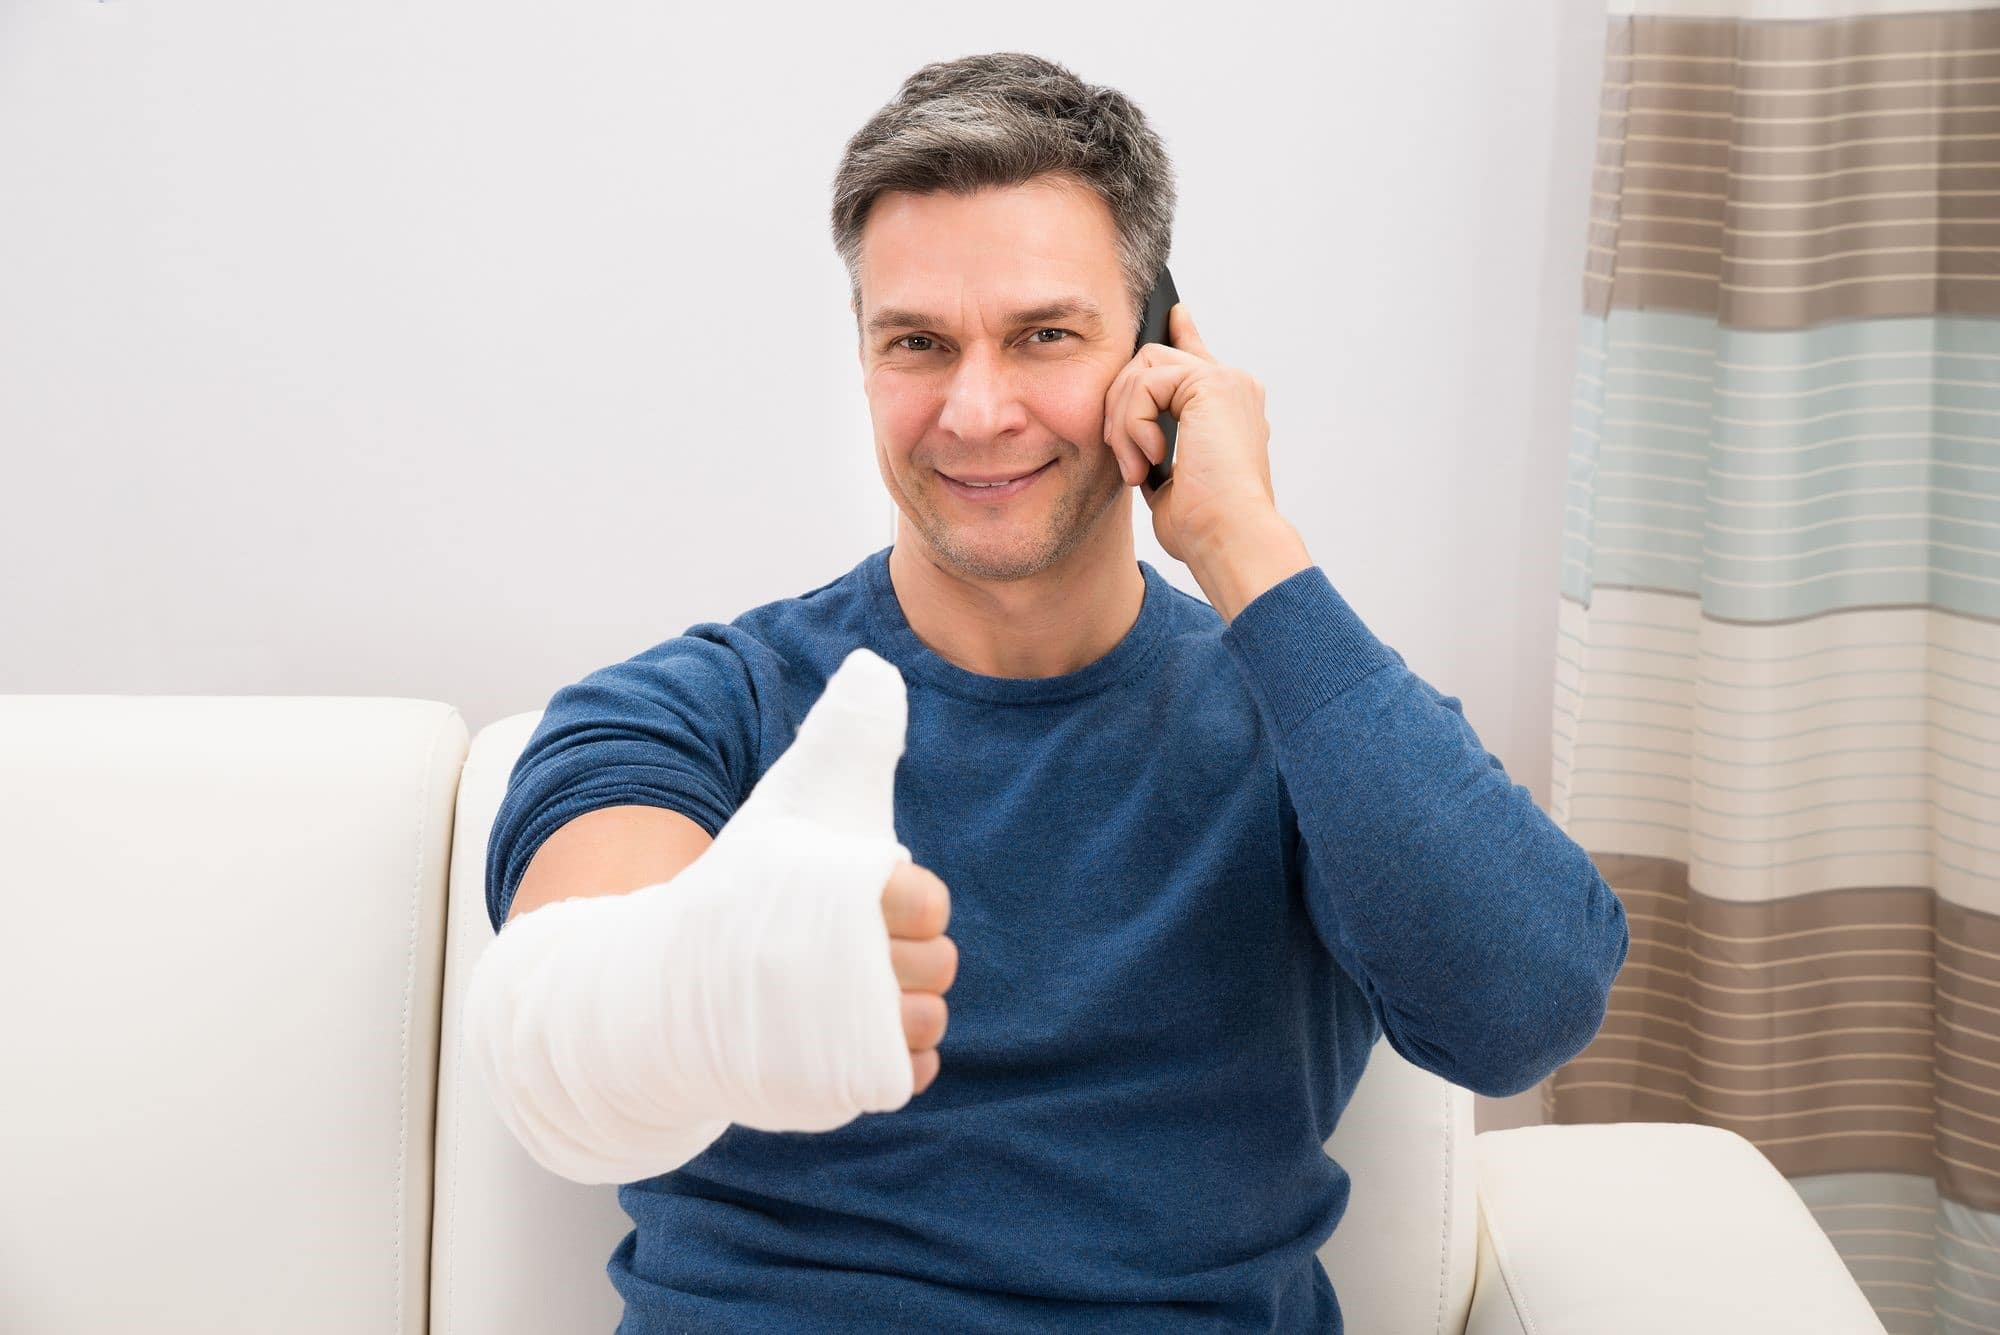 Call a Personal Injury Lawyer and Take Smart Steps to Filing a Claim